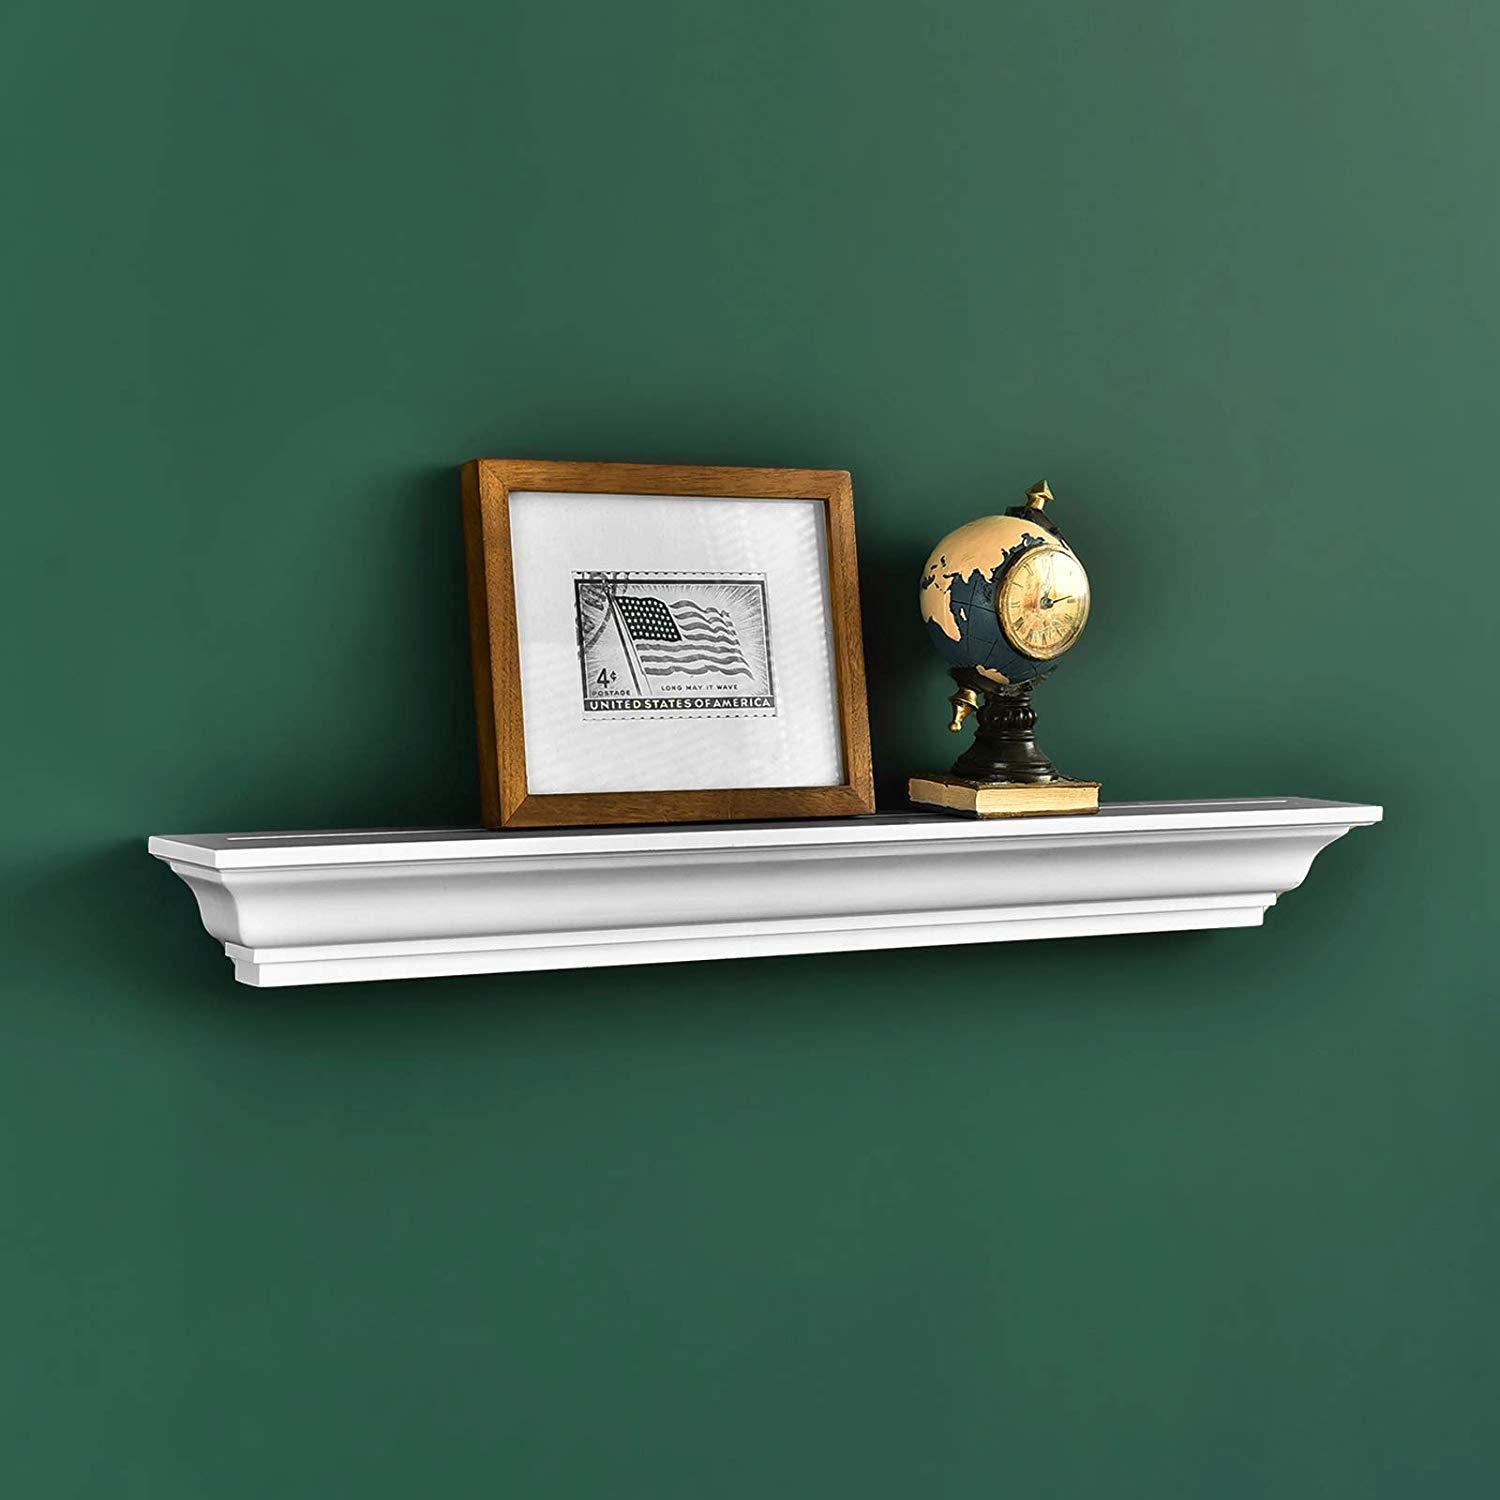 welland jefferson crown molding floating wall ture shelf ledge inch white home kitchen can you use self adhesive floor tiles walls large bookshelf plans ikea storage drawers